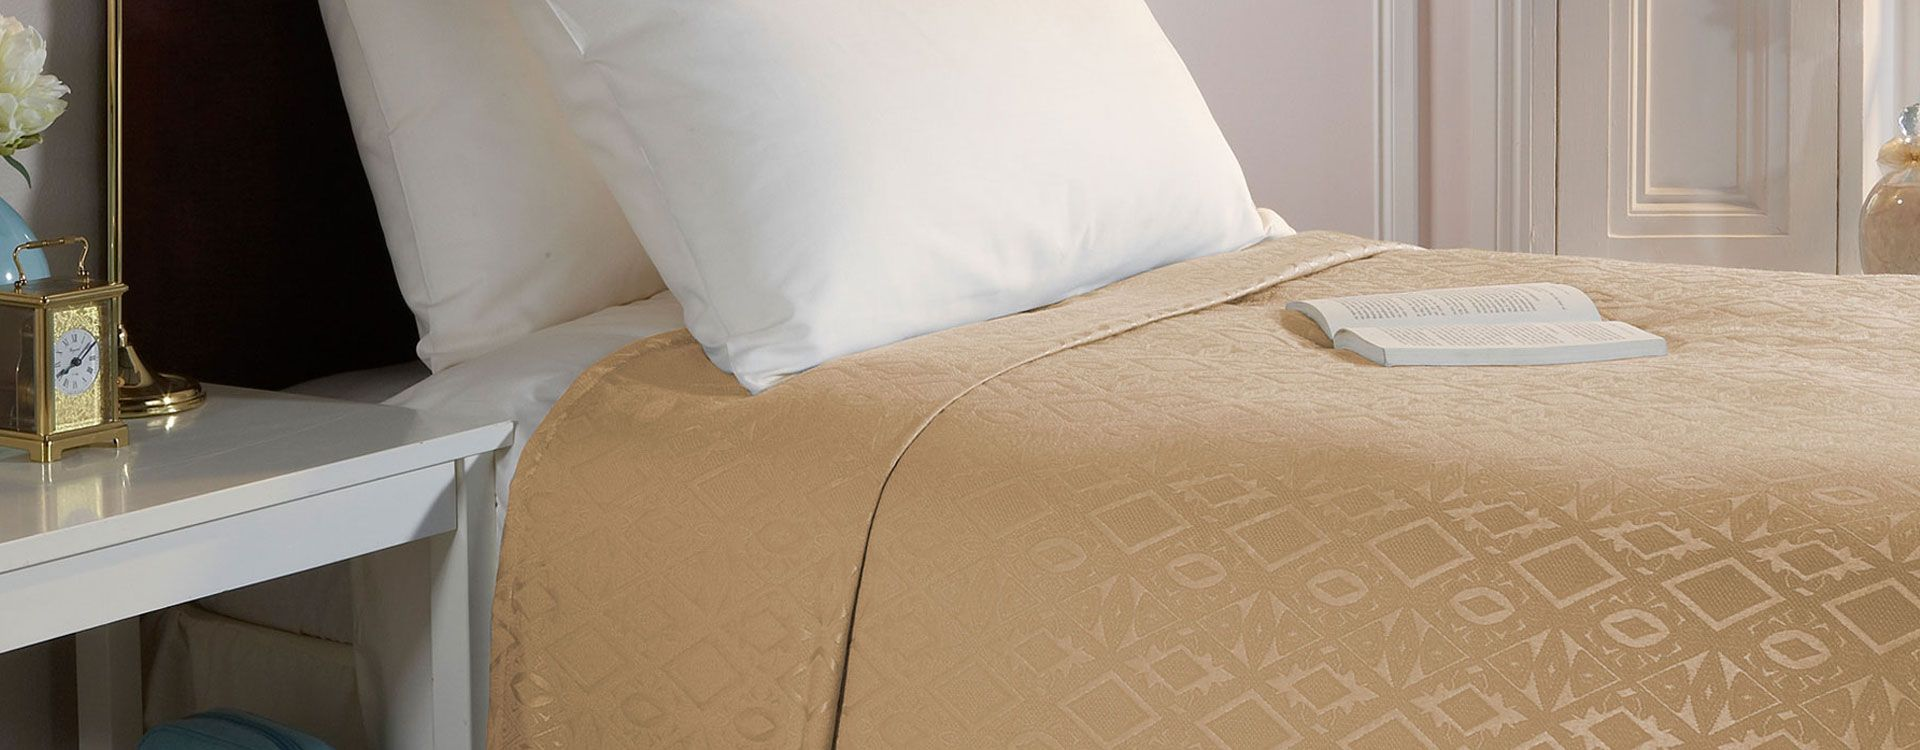 Flame Retardant Bed Linen